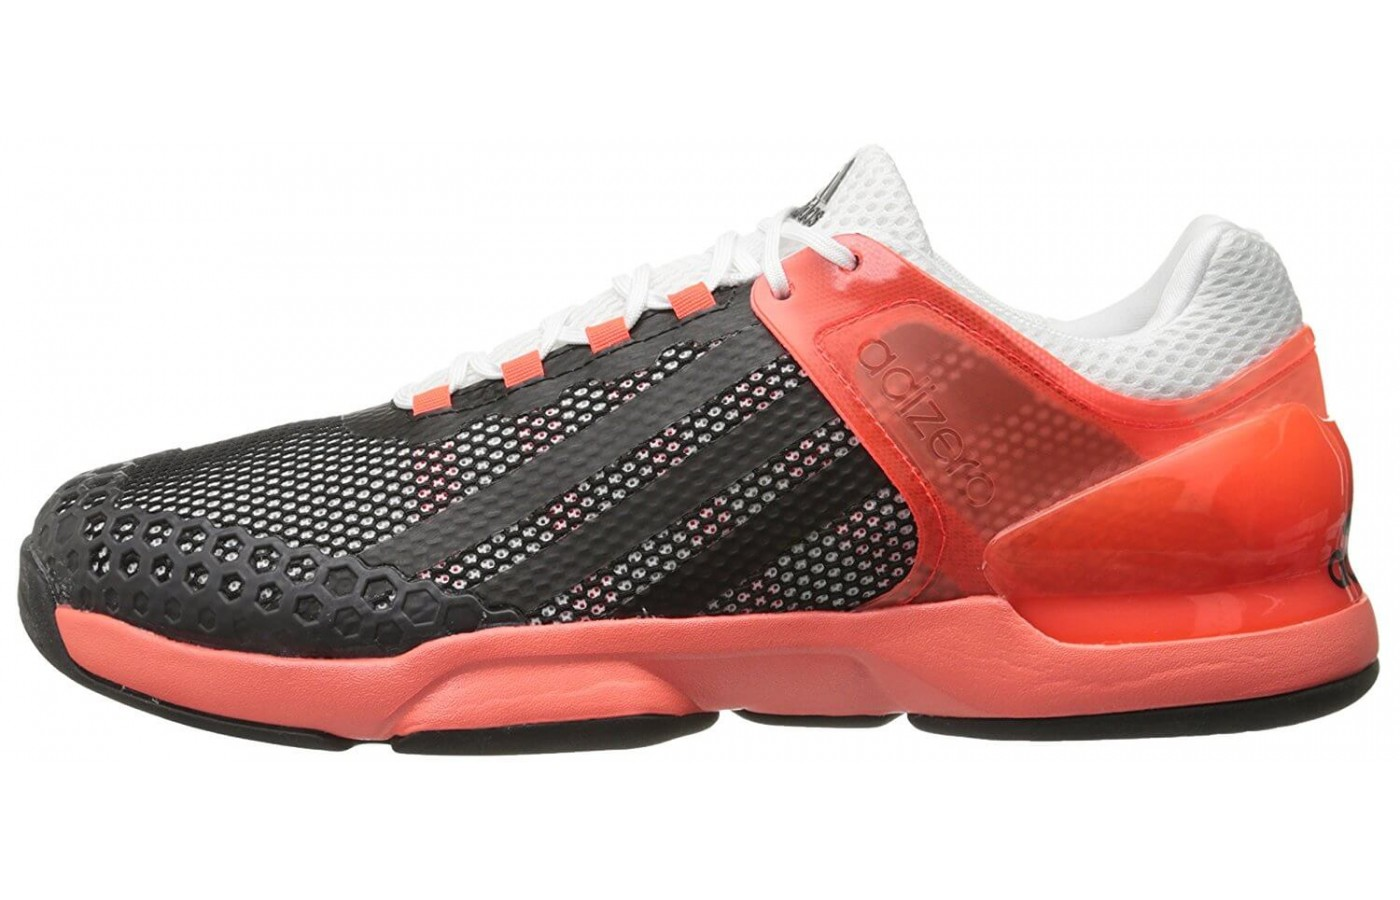 The Adidas Adizero Ubersonic has a lower heel drop in order to provide more even weight distribution.